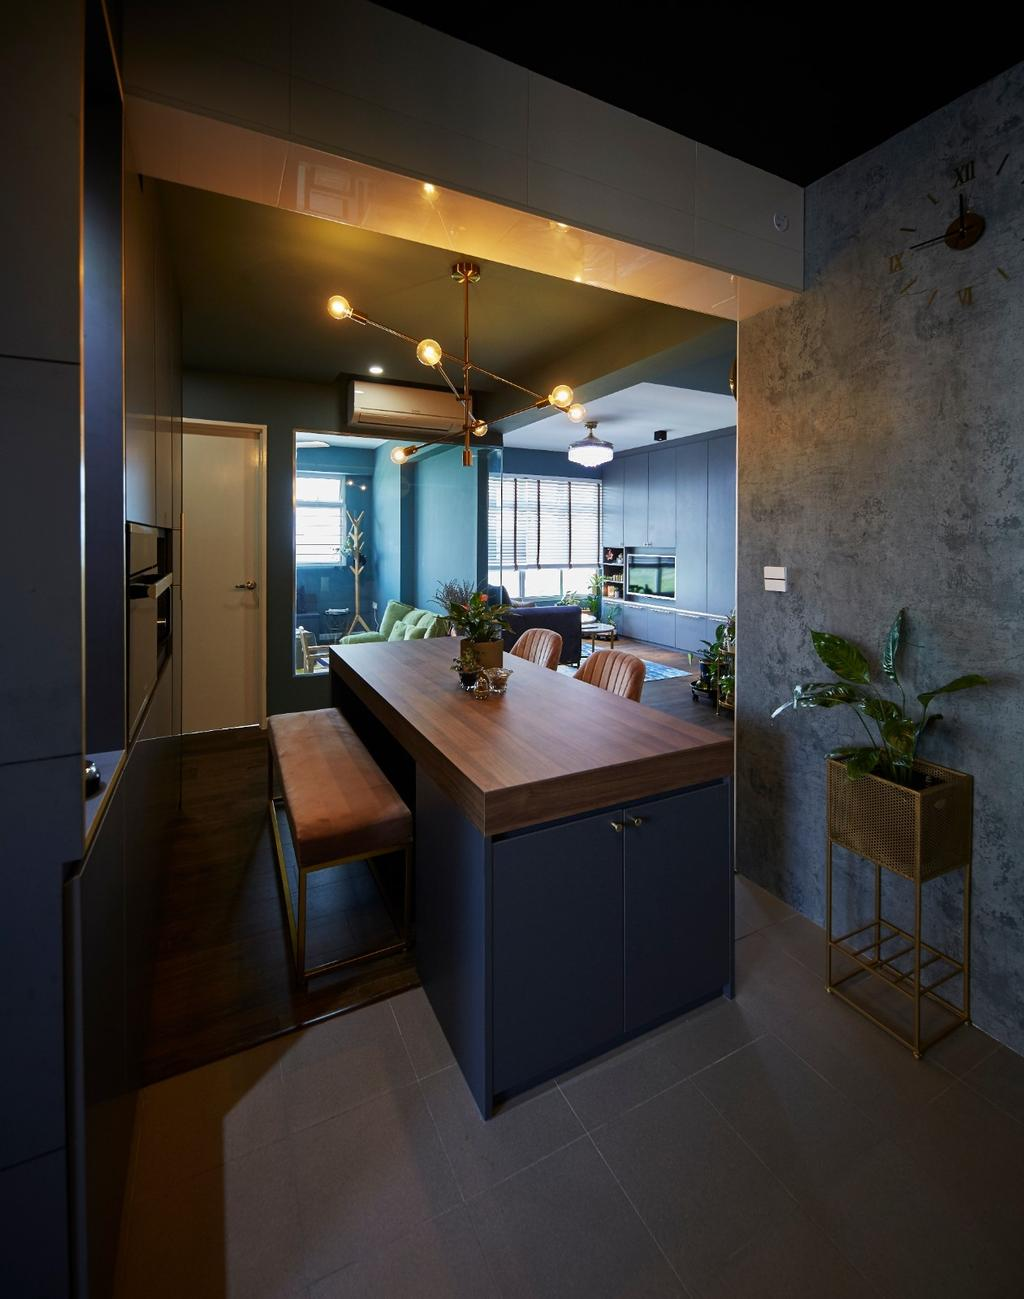 Anchorvale Road by Carpenters 匠